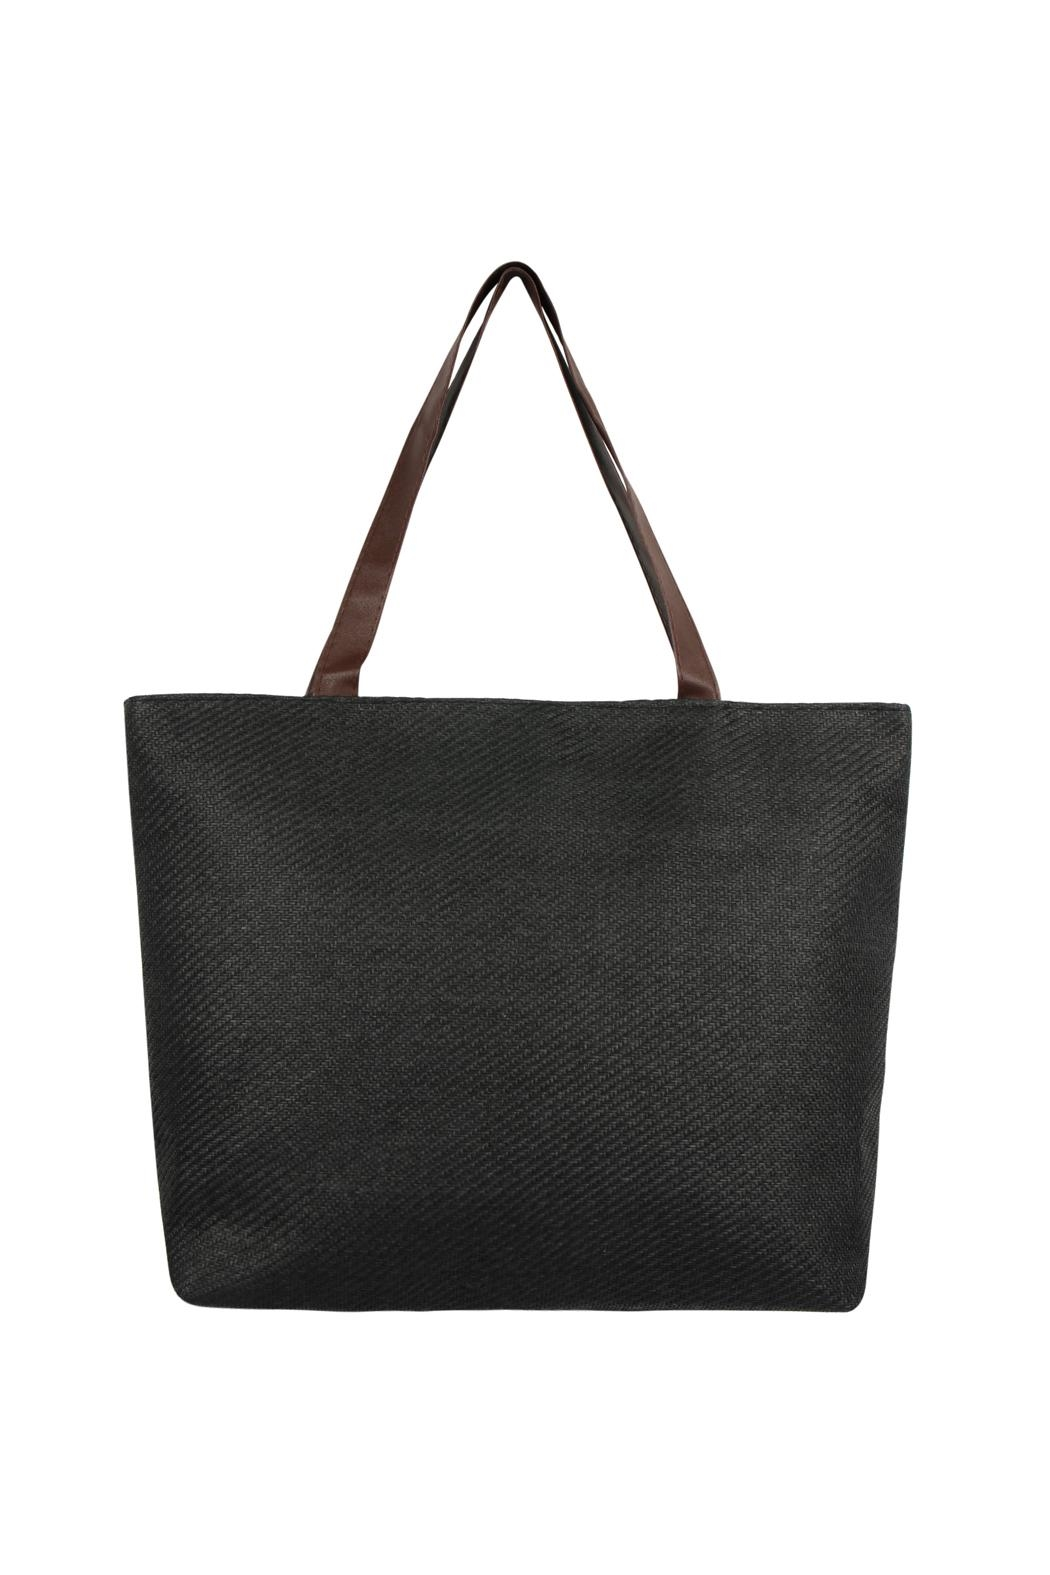 Riah Fashion Straw Tote Bag - Main Image